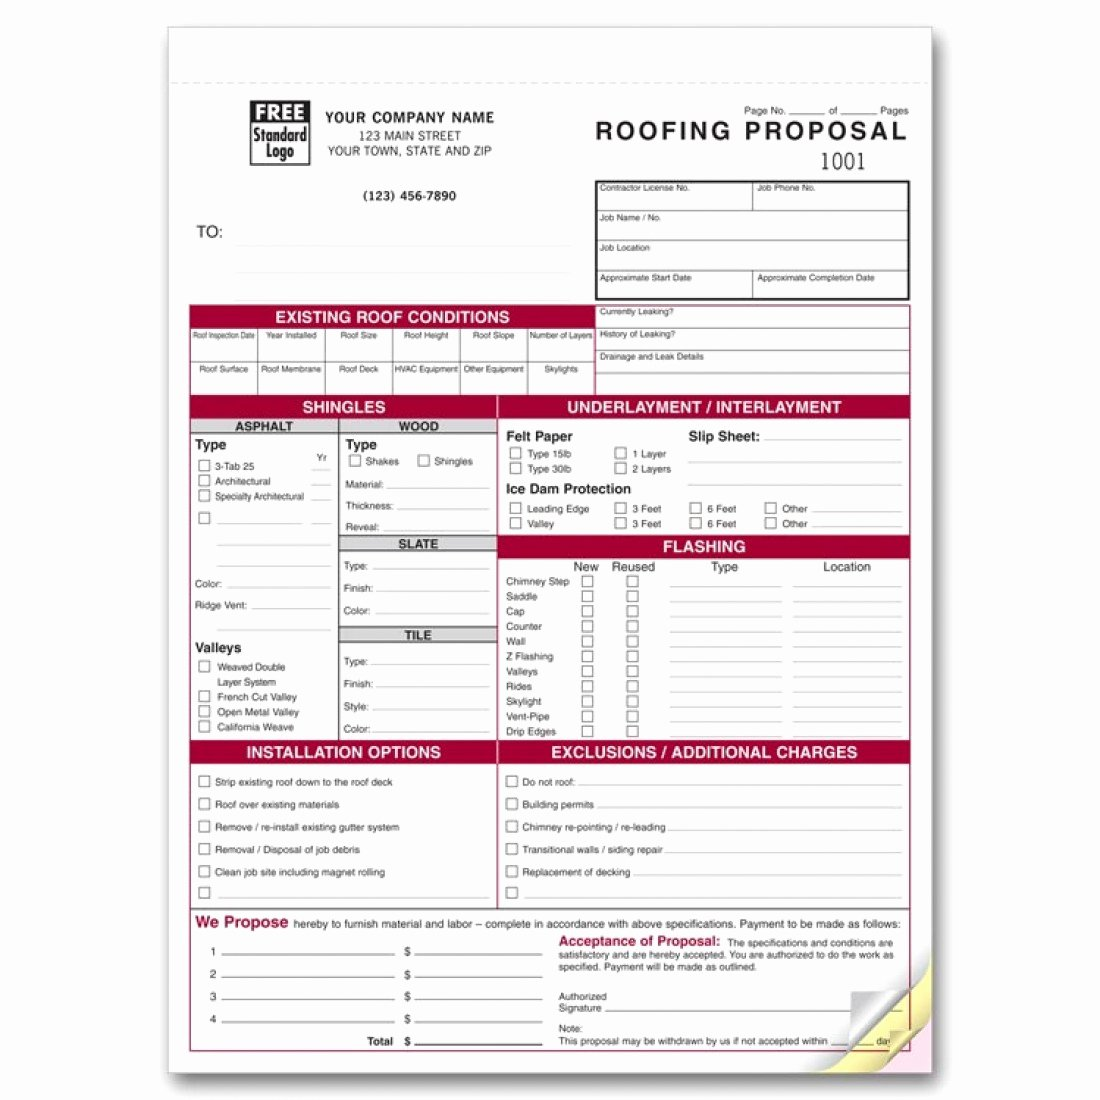 Detailed Roofing Proposal forms 6566 at Print Ez